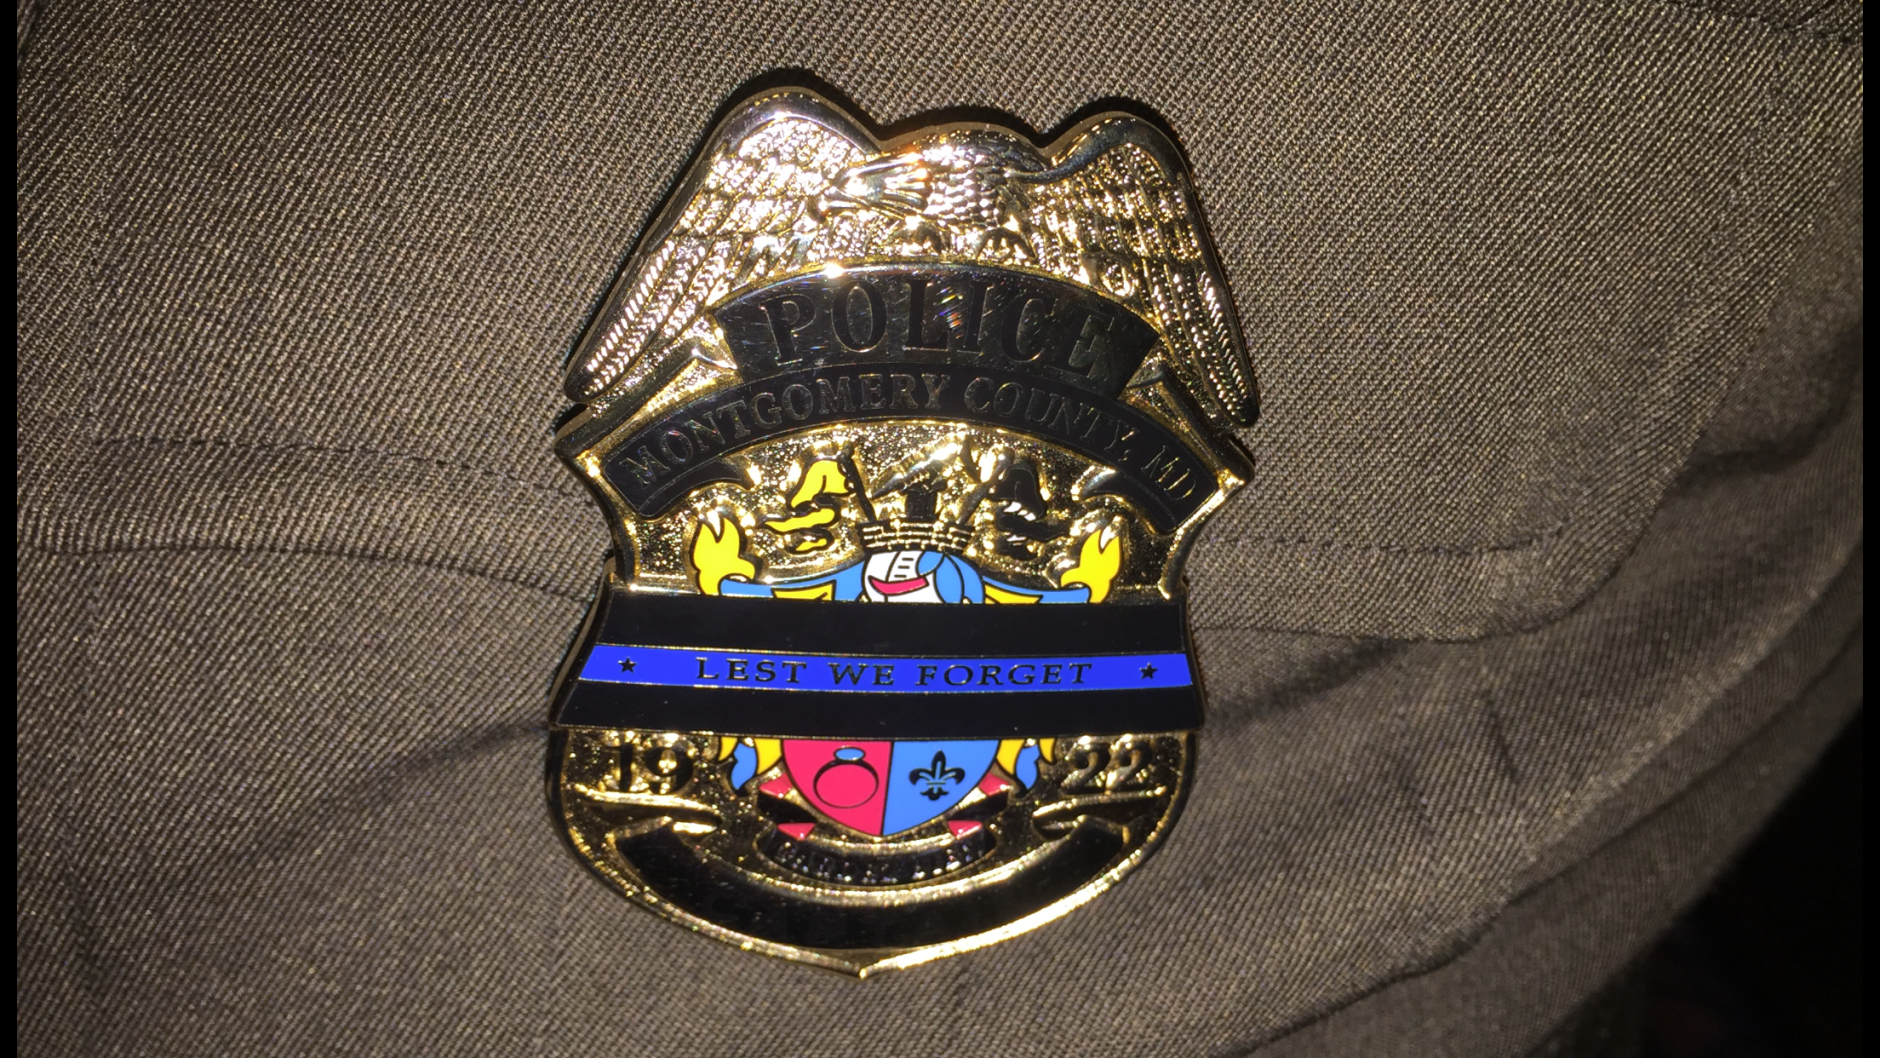 Ceremony held to remember fallen law enforcement | WTOP